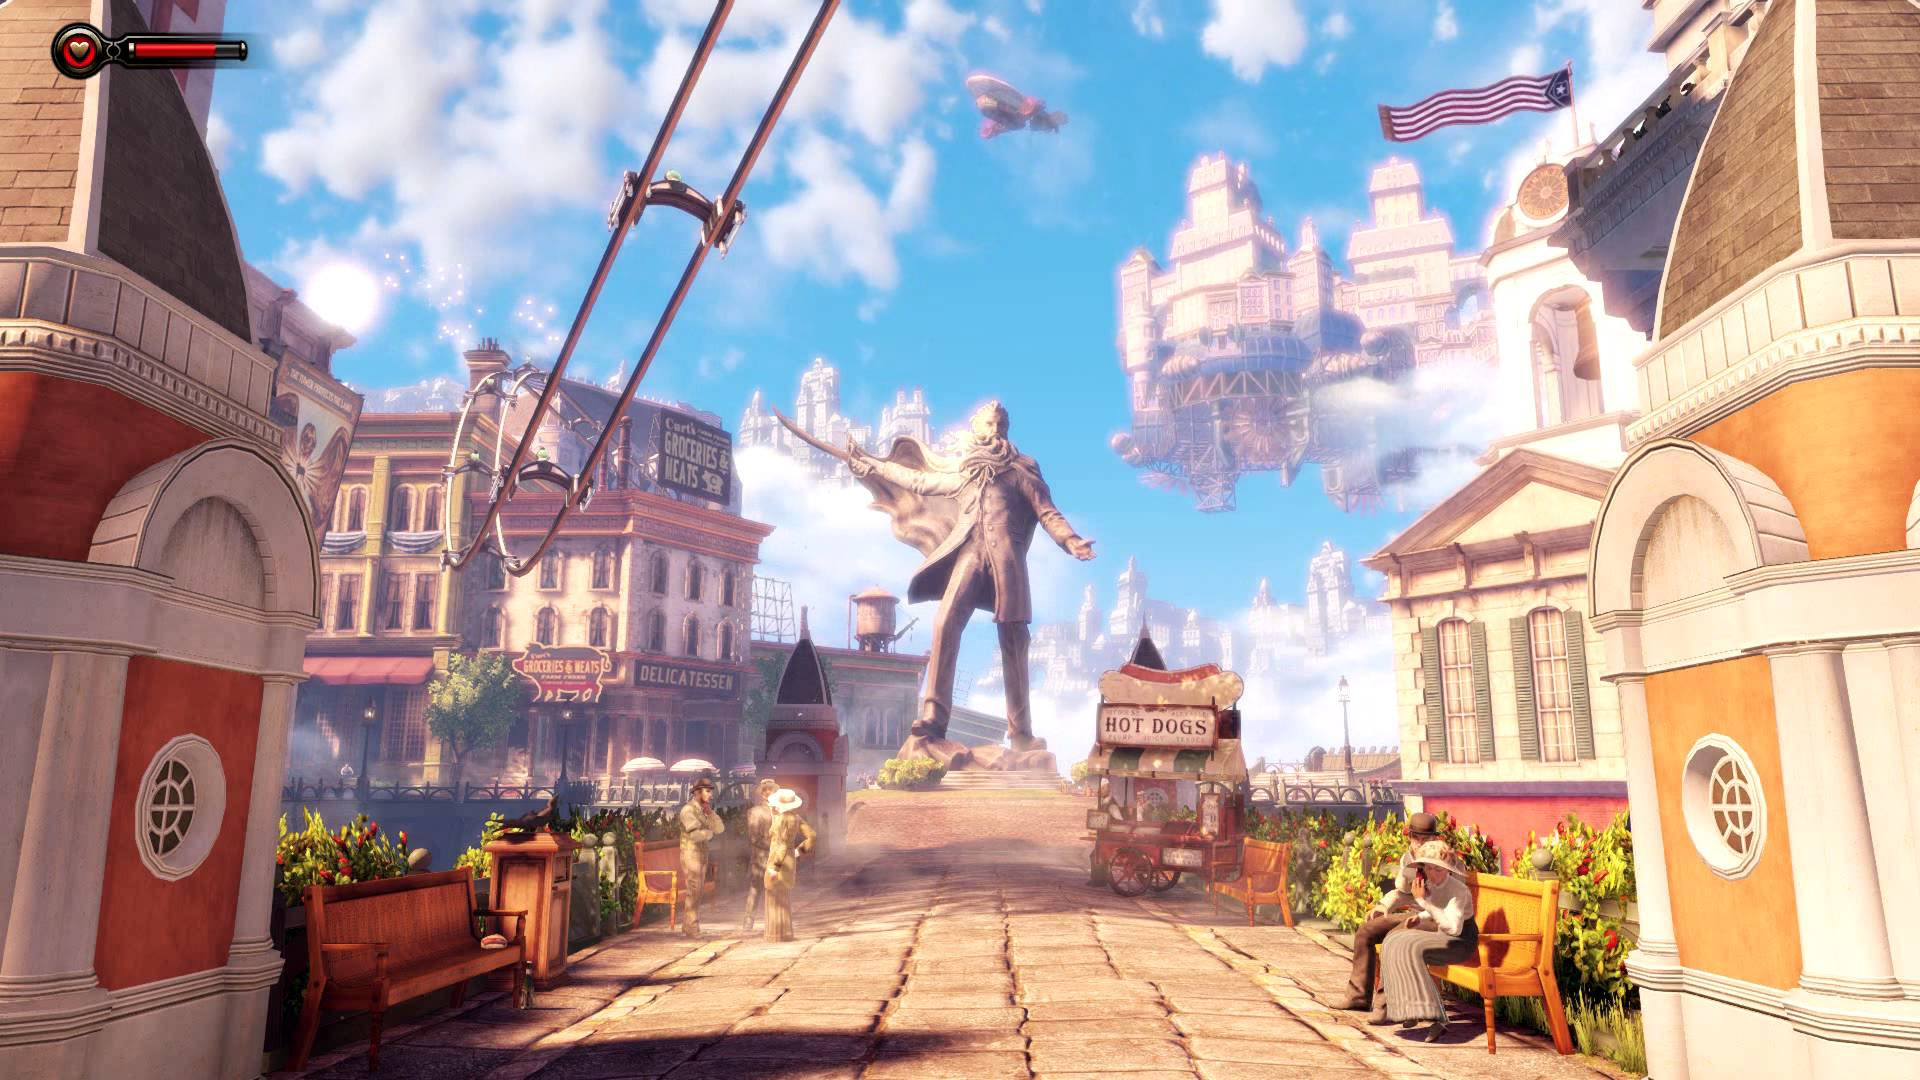 DreamScene [Live Wallpaper] - Bioshock Infinite - Columbia (1080p)